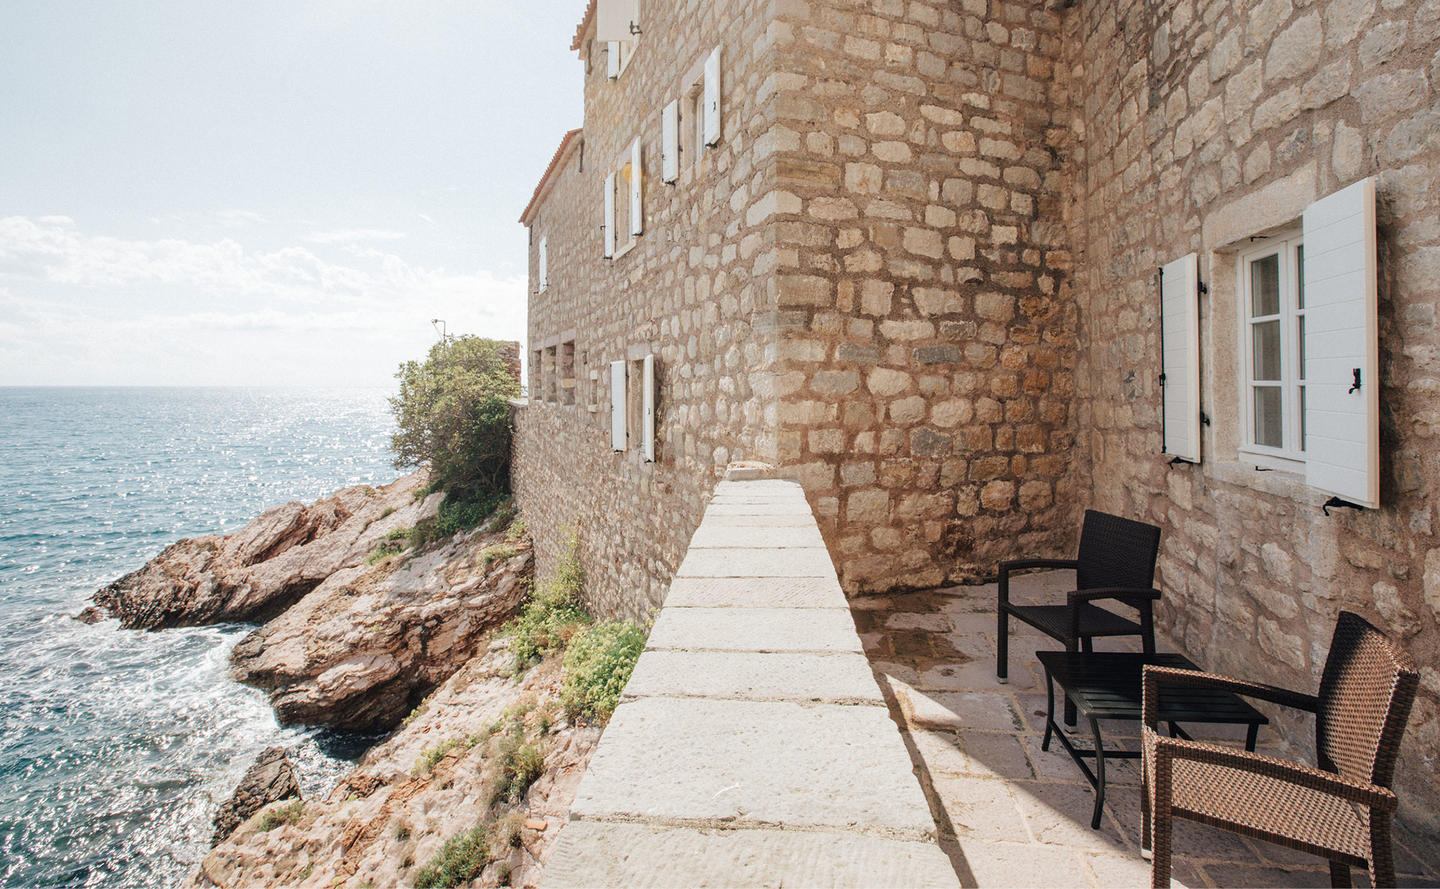 Terrace, Three-Bedroom Village Cottage, Aman Sveti Stefan, Montenegro